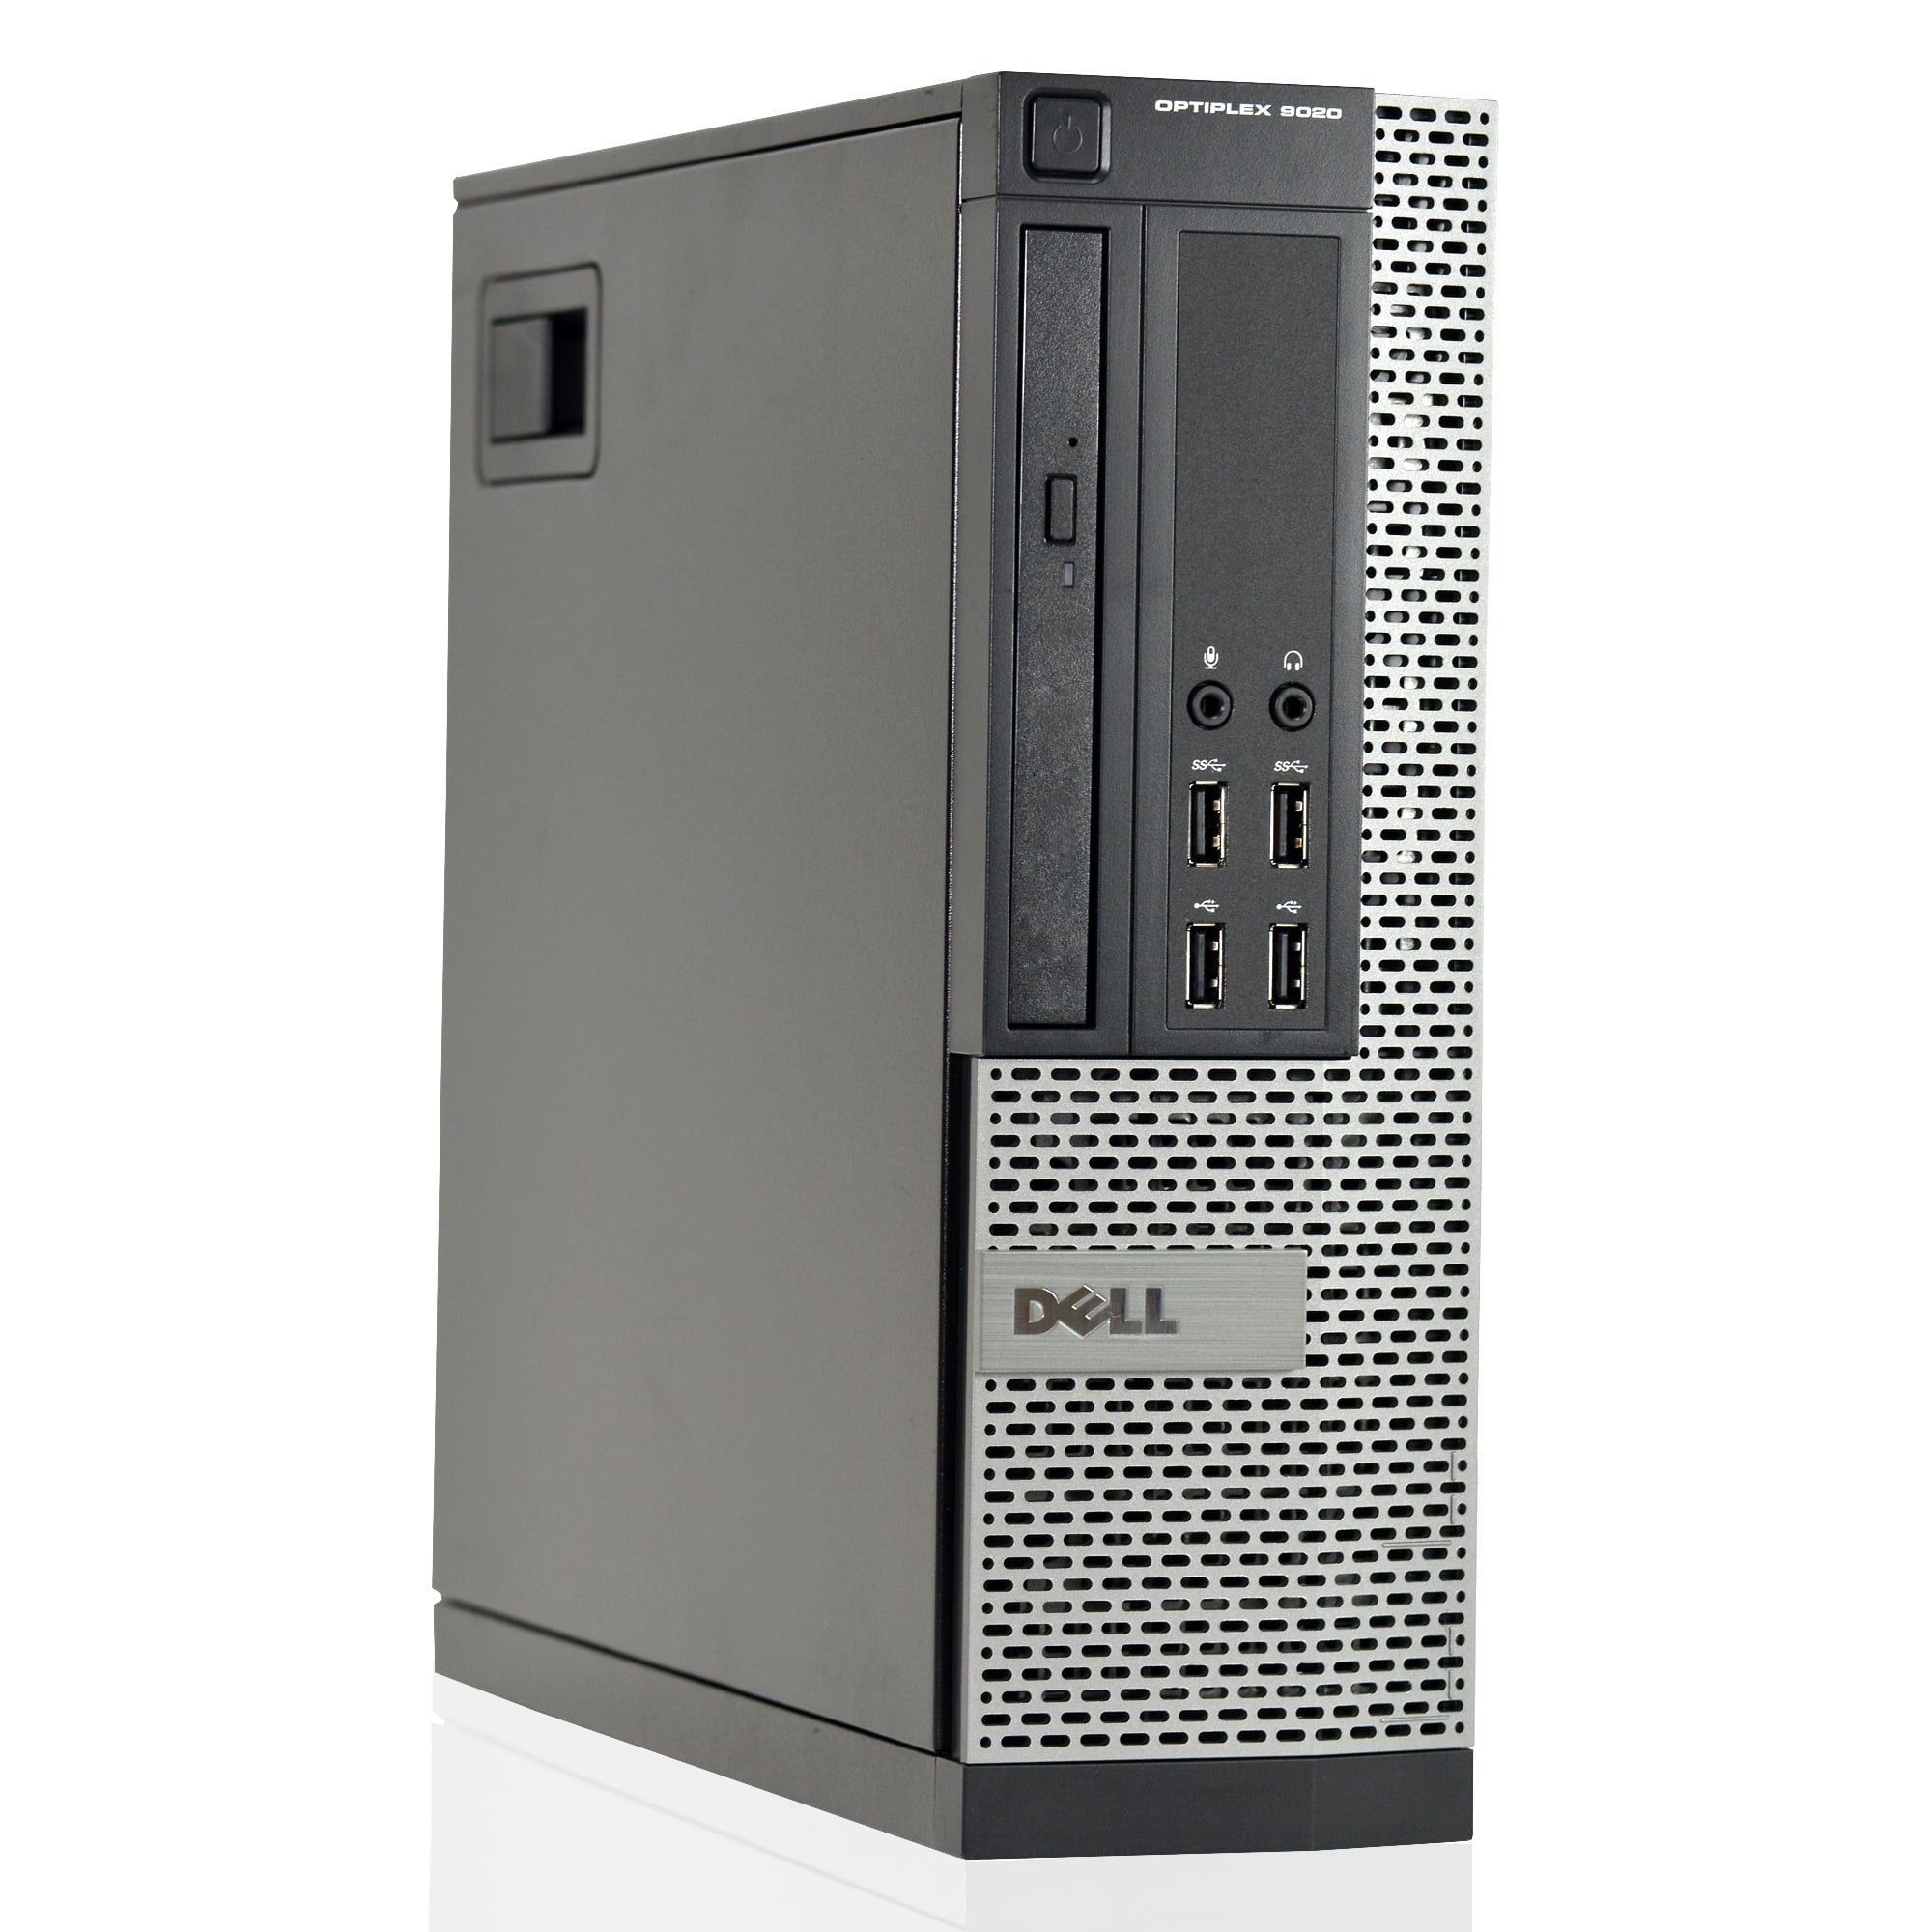 Refurbished DELL OPTIPLEX 9020 SFF (CORE I5 4TH GEN/4GB/500GB/DOS)